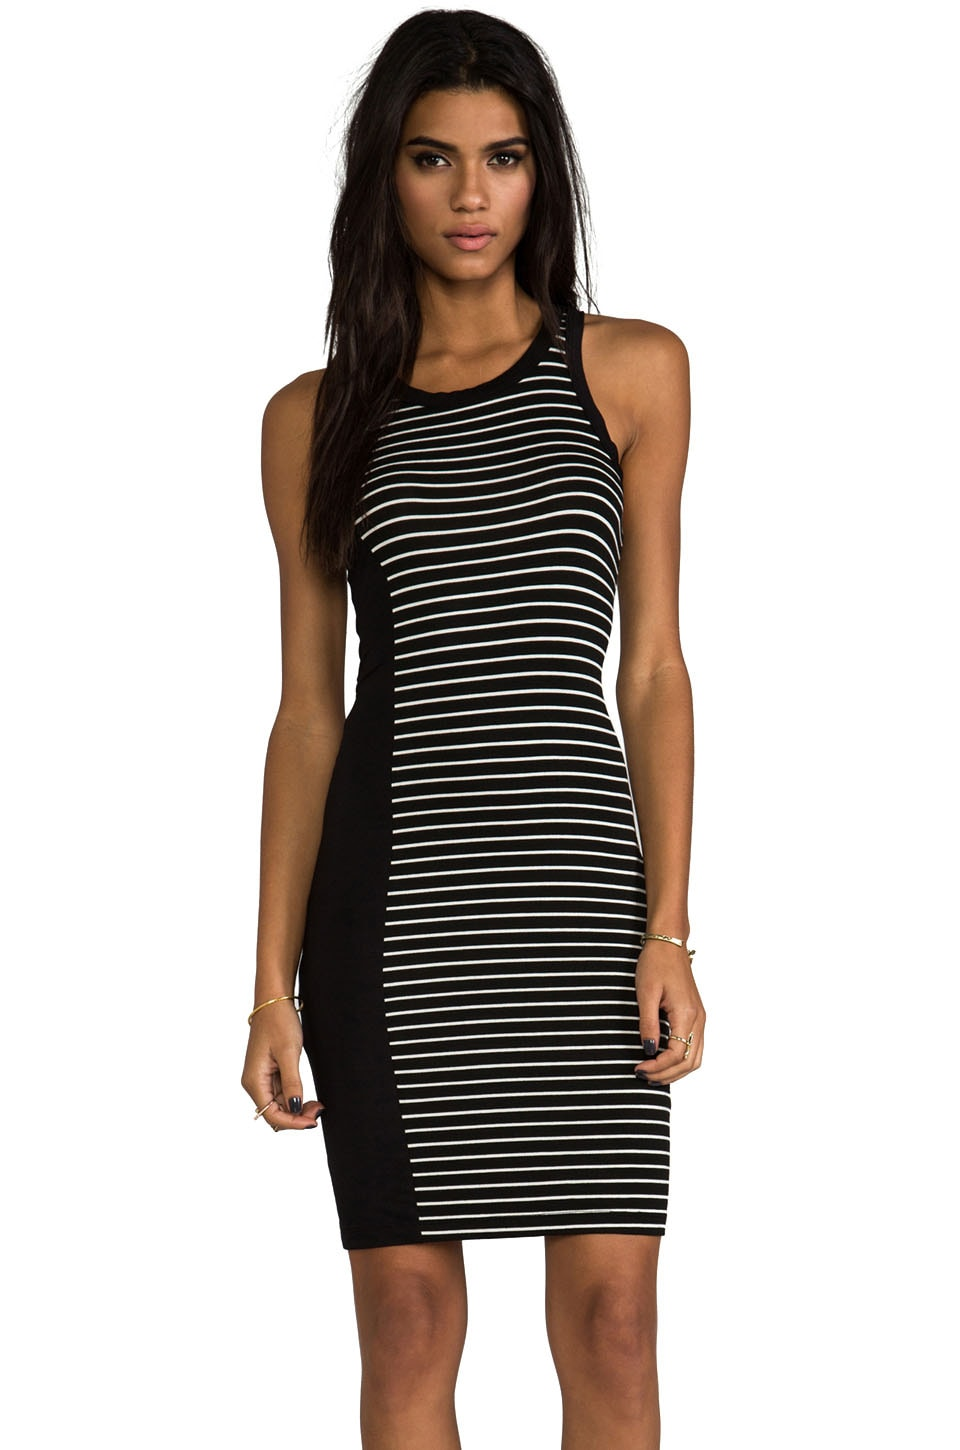 Kain Kidd Dress in Black with Black & White Stripe